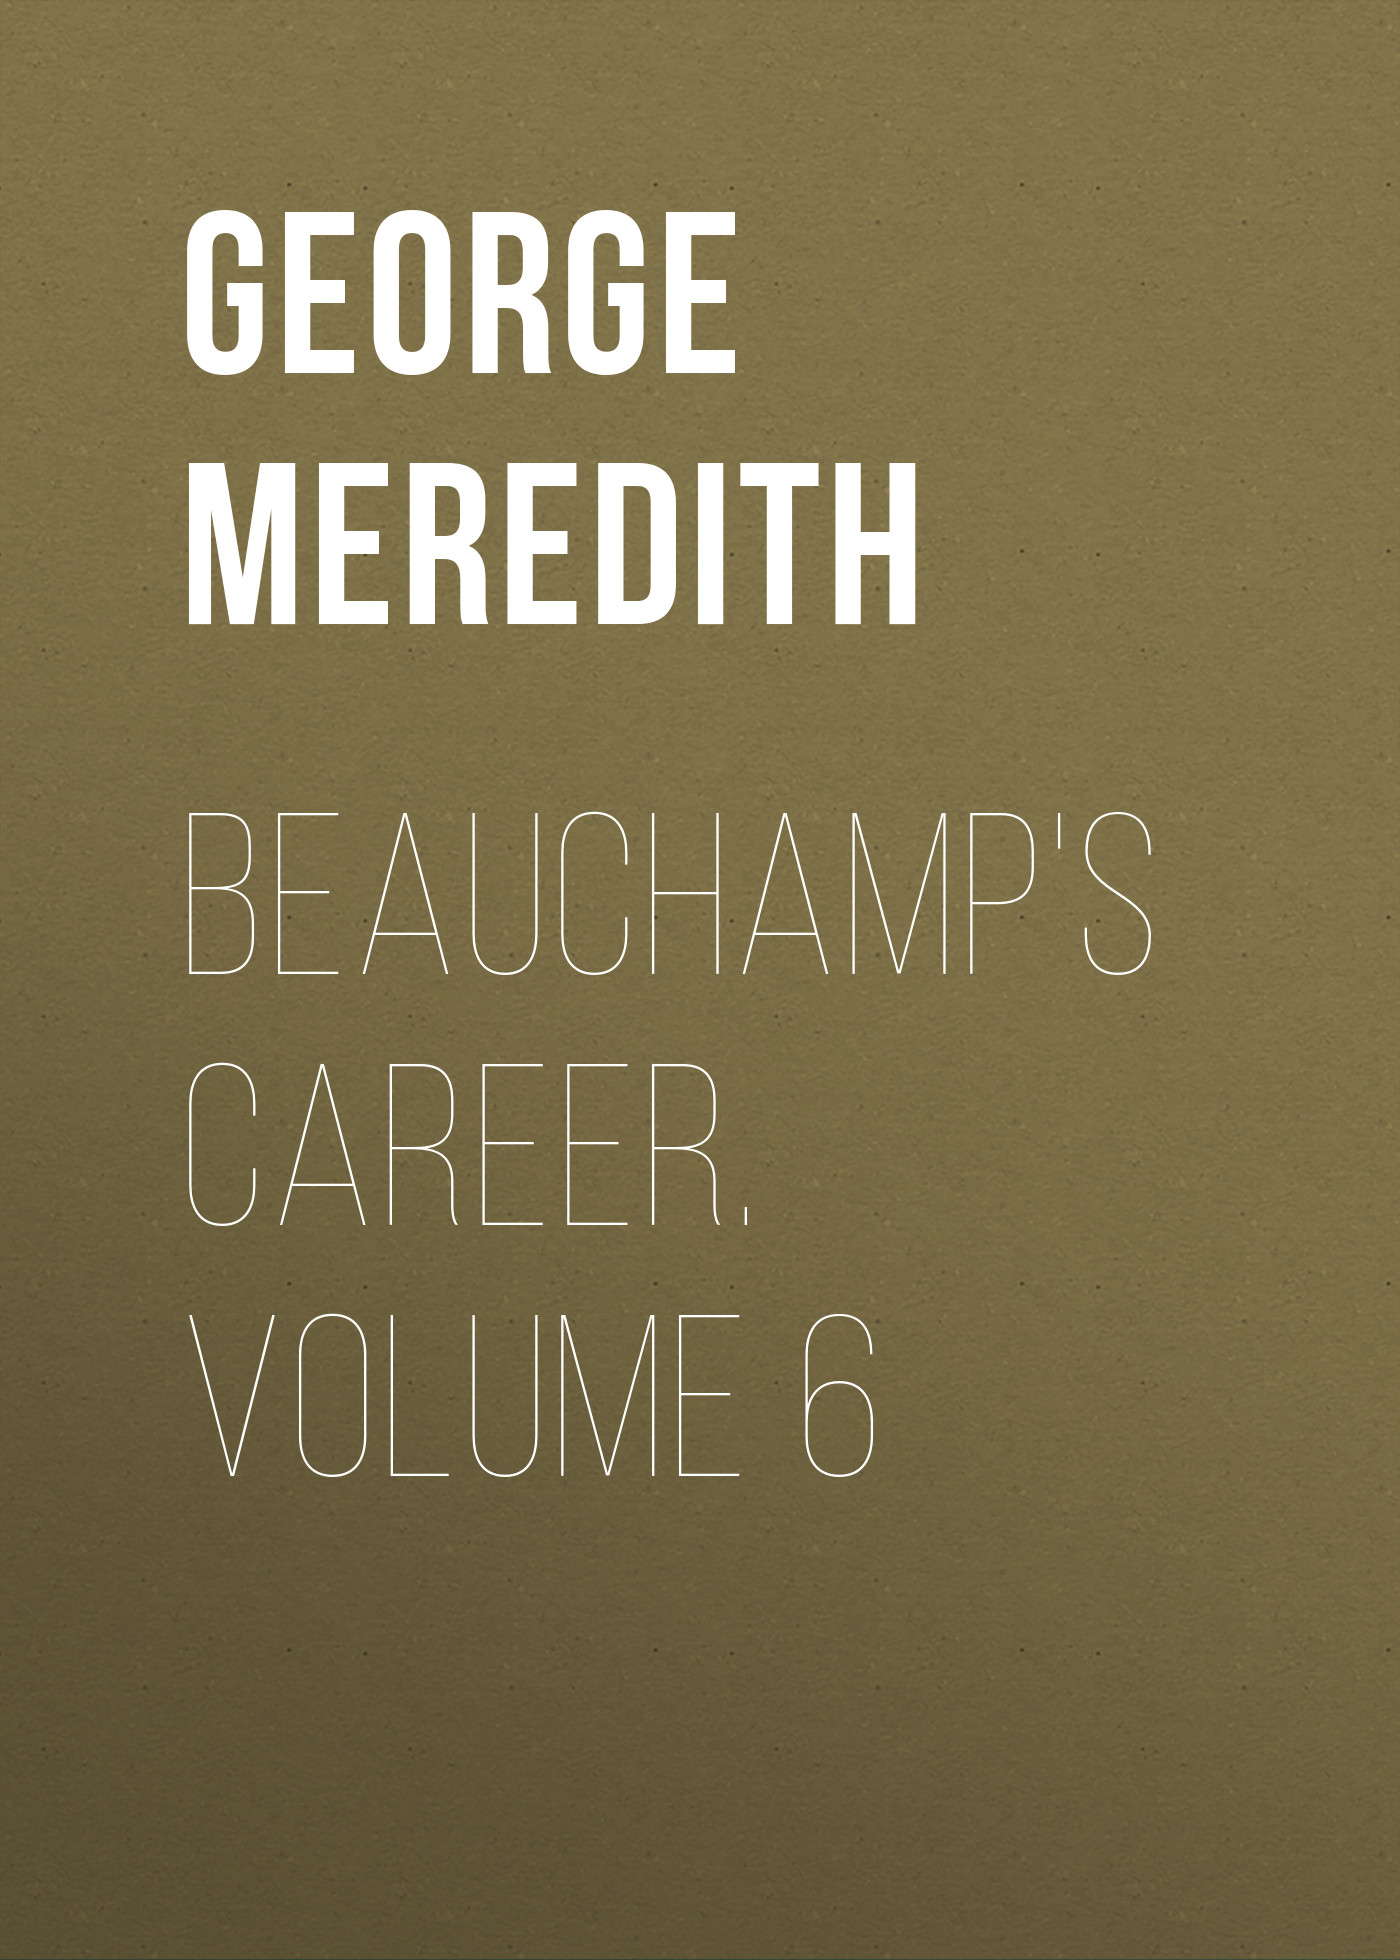 цена George Meredith Beauchamp's Career. Volume 6 в интернет-магазинах